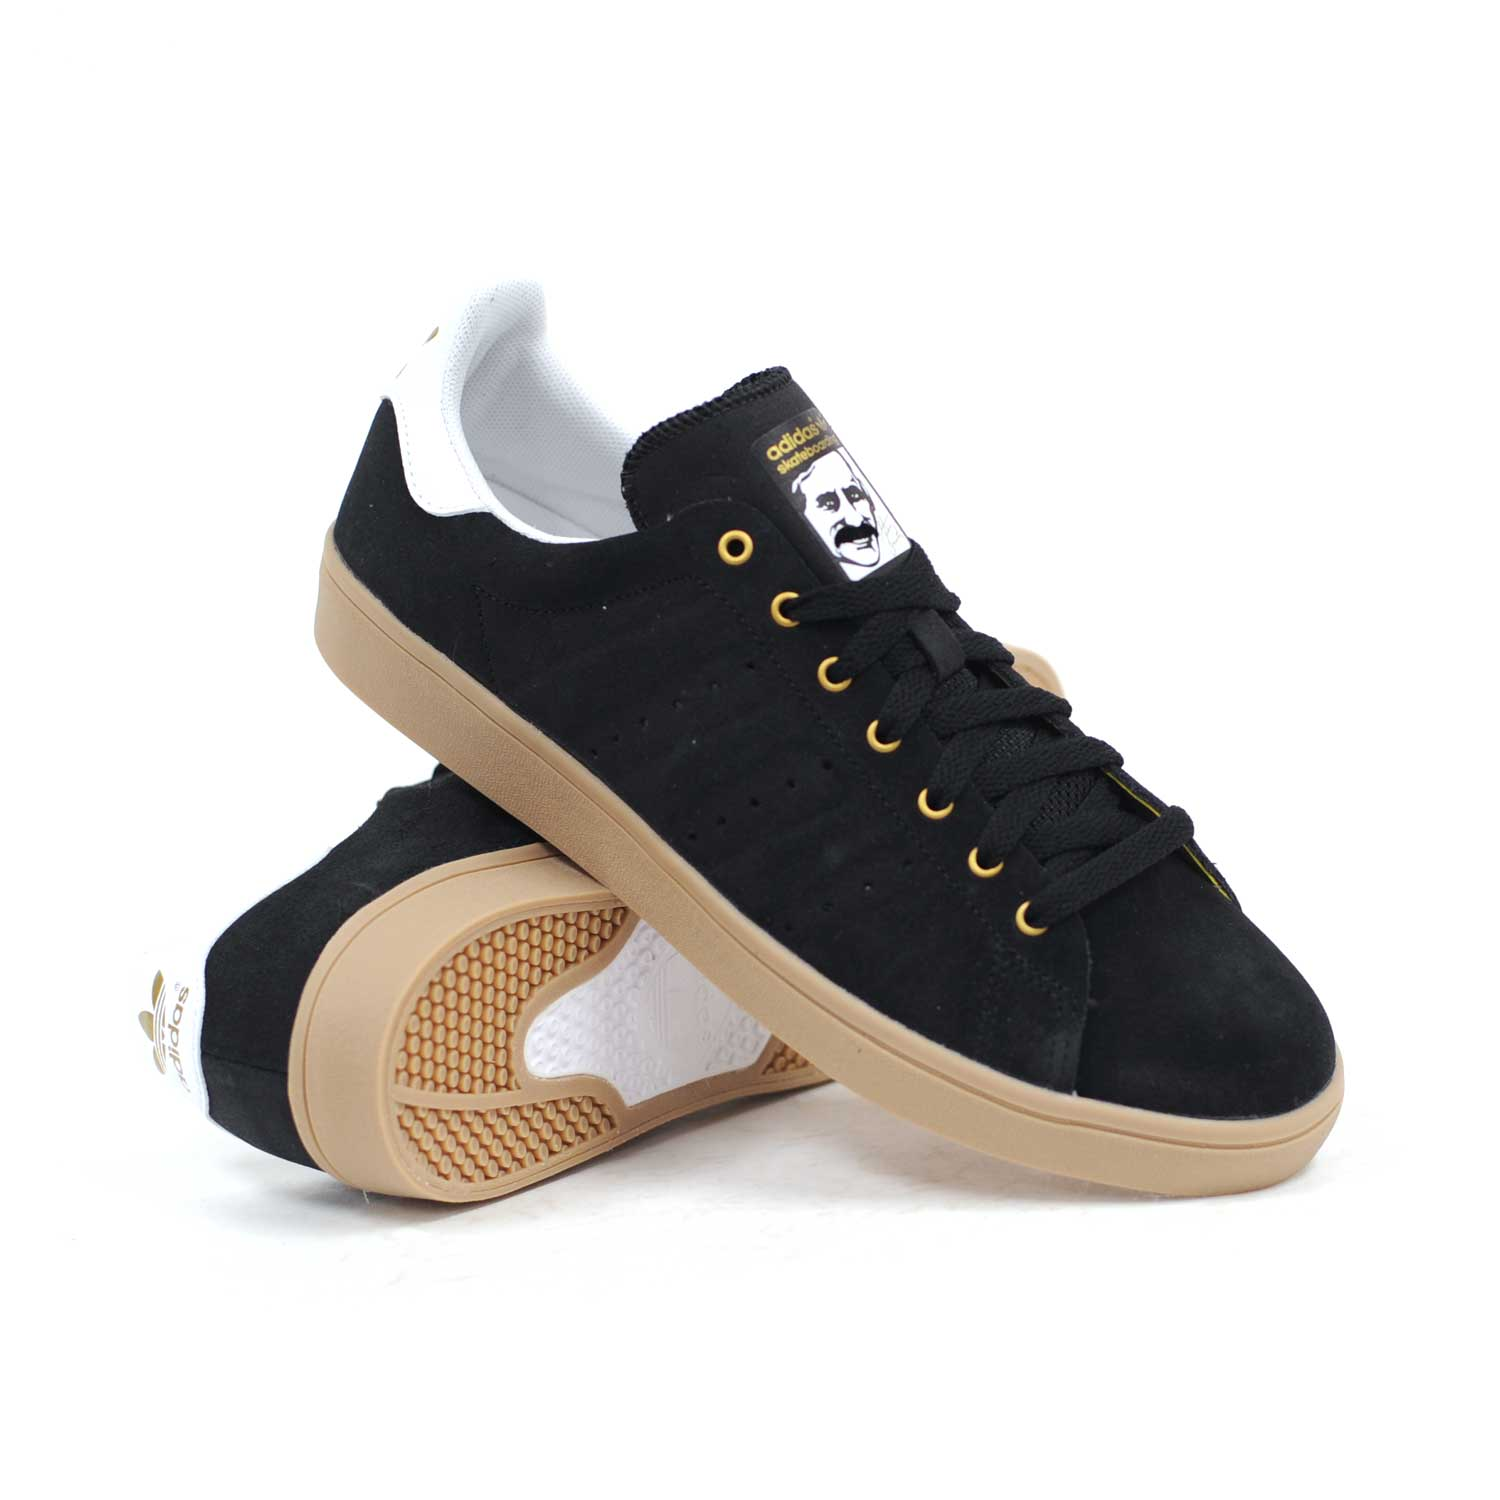 adidas stan smith vulc black white gum men 39 s skate shoes. Black Bedroom Furniture Sets. Home Design Ideas